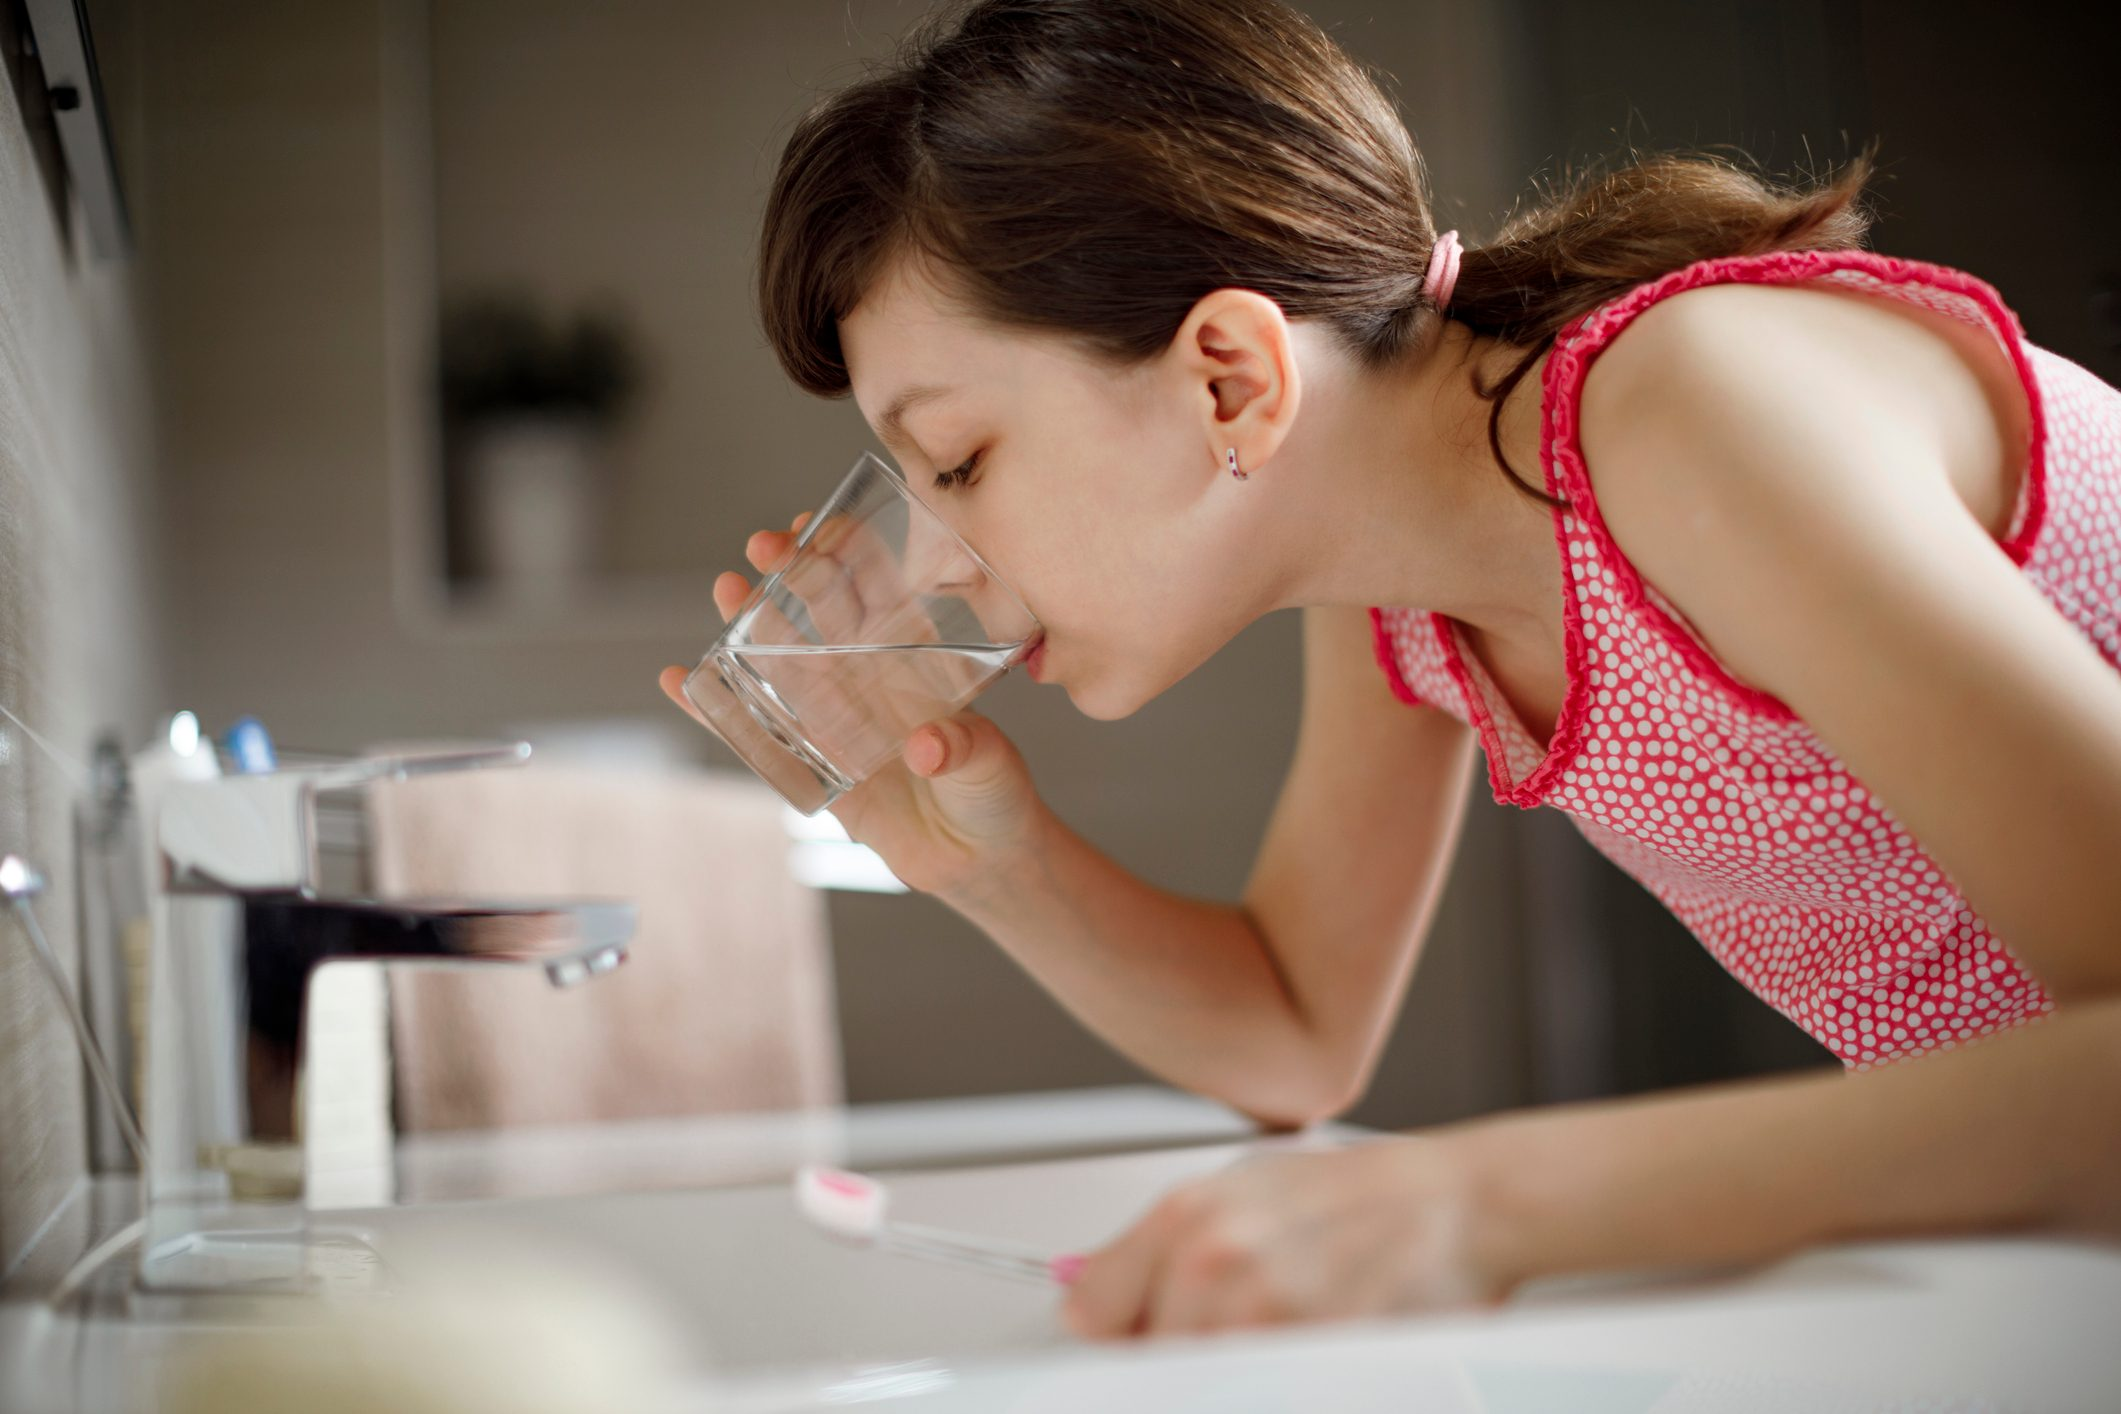 young girl rinsing mouth with water